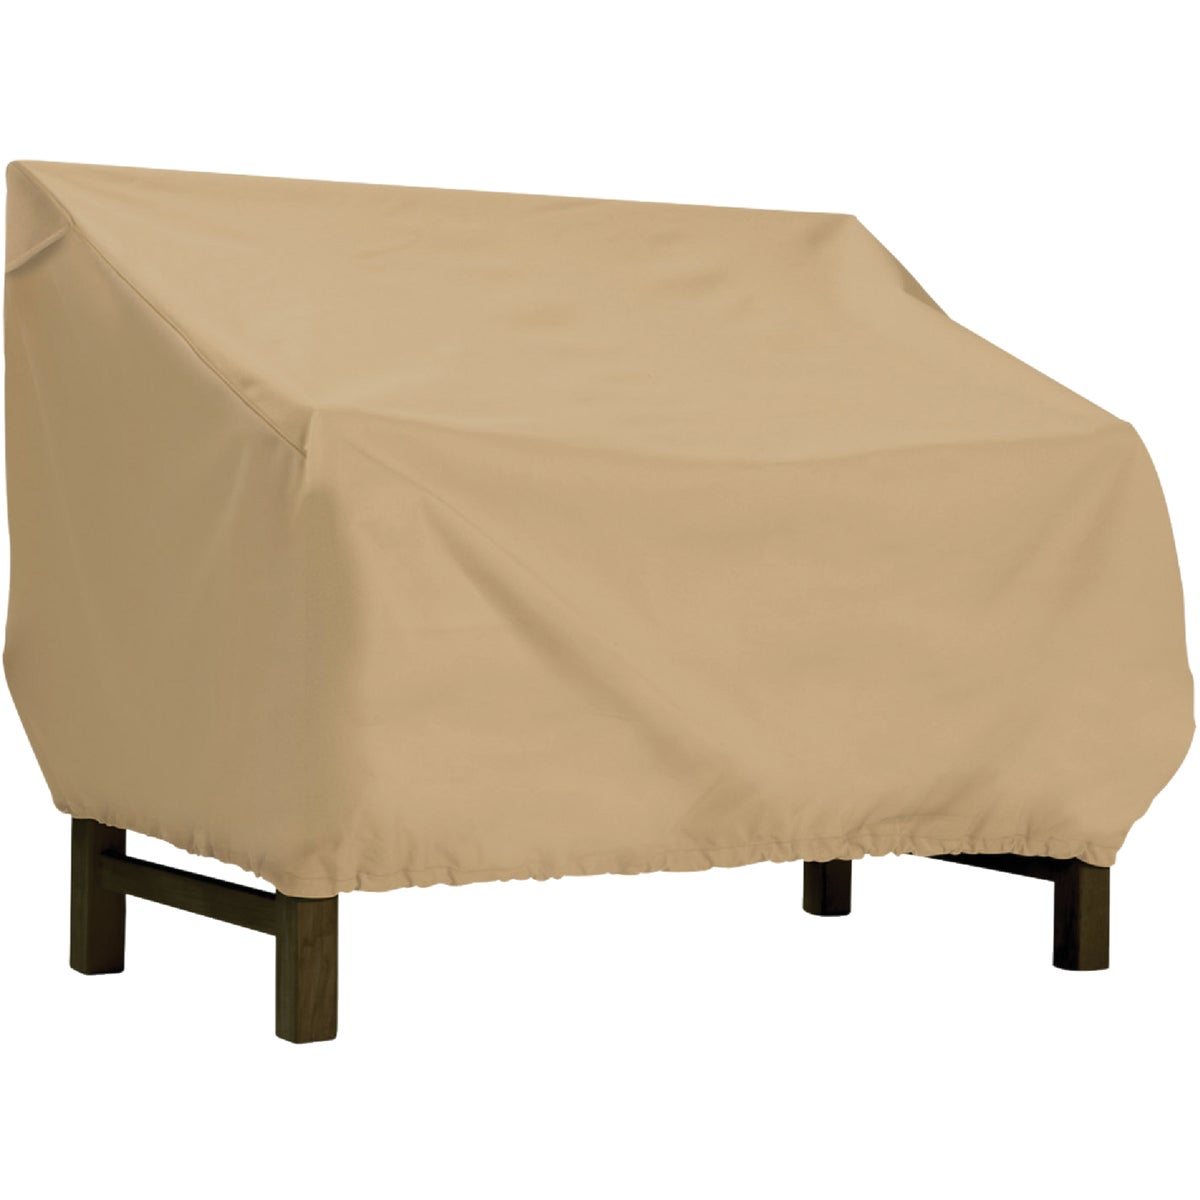 2-SEAT LOVESEAT COVER - 58272 by Classic Accessories